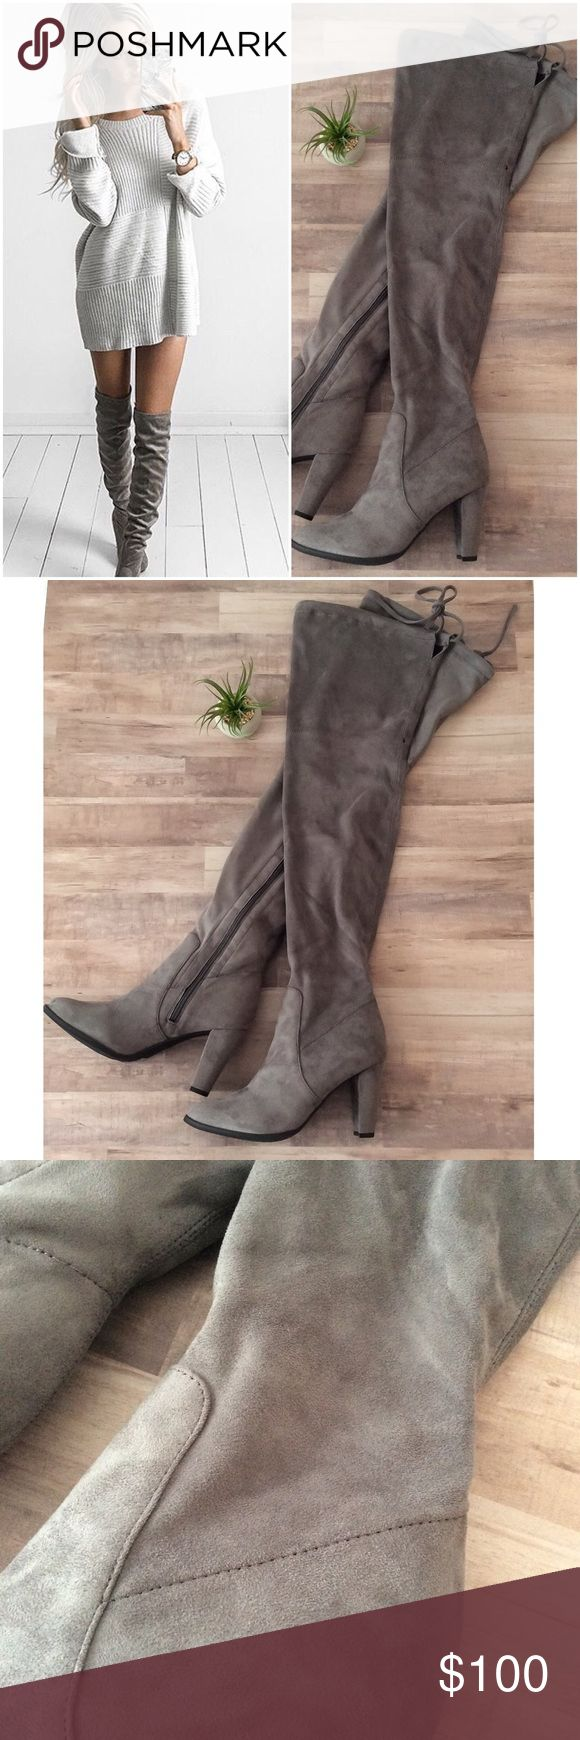 """Fashion Blogger Favorite!!  Over the Knee Boots Super sexy over the knee gray Suede heeled boots. Stretchy so the fit is spot on whether you wear them thigh high or slouch them down. Behind the thigh tie. Works for even wide calf ladies.  vegan cruelty free """"Suede"""" hidden inner zipper. Approx 3.25"""" heel, 23"""" shaft, 13"""" calf circumference with STRETCH for a wider calf. As seen on Kylie Jenner and Kristy Fleming! Don't miss out on this trend! TTS fit! By G.C. Shoes, the style is nightout GC…"""